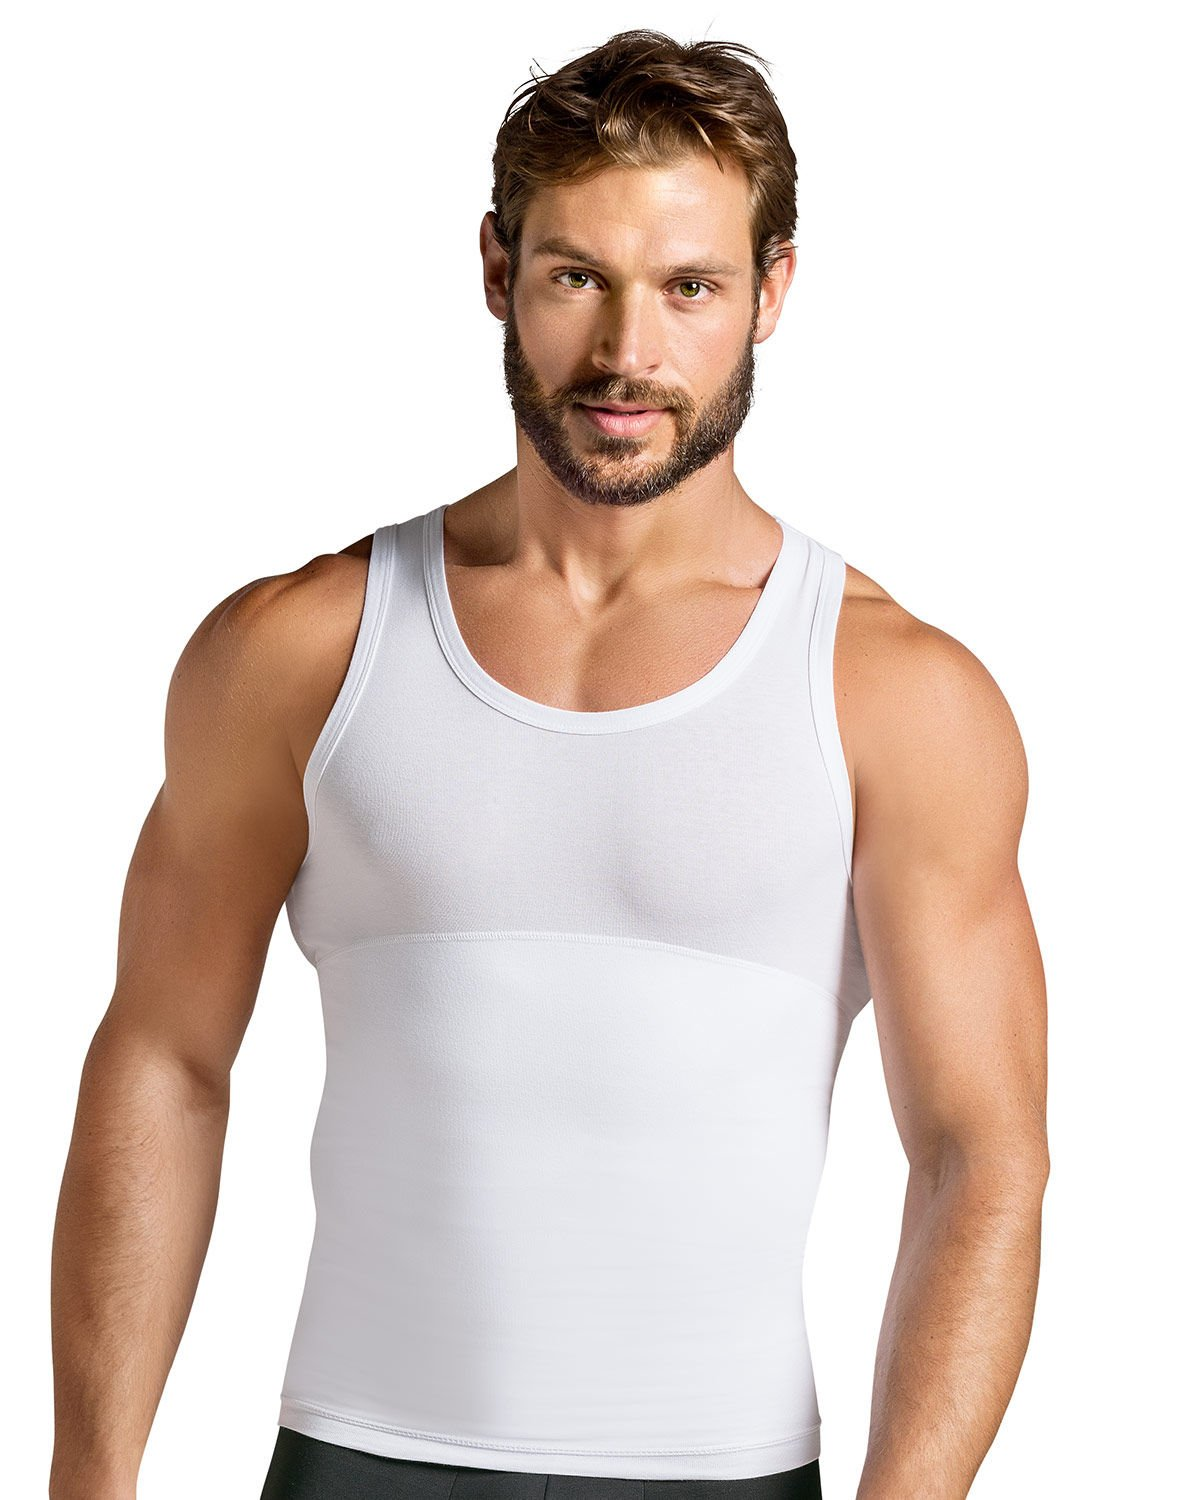 Leo Men's Slimming Abs Toning Firm Compression Tank Shaper